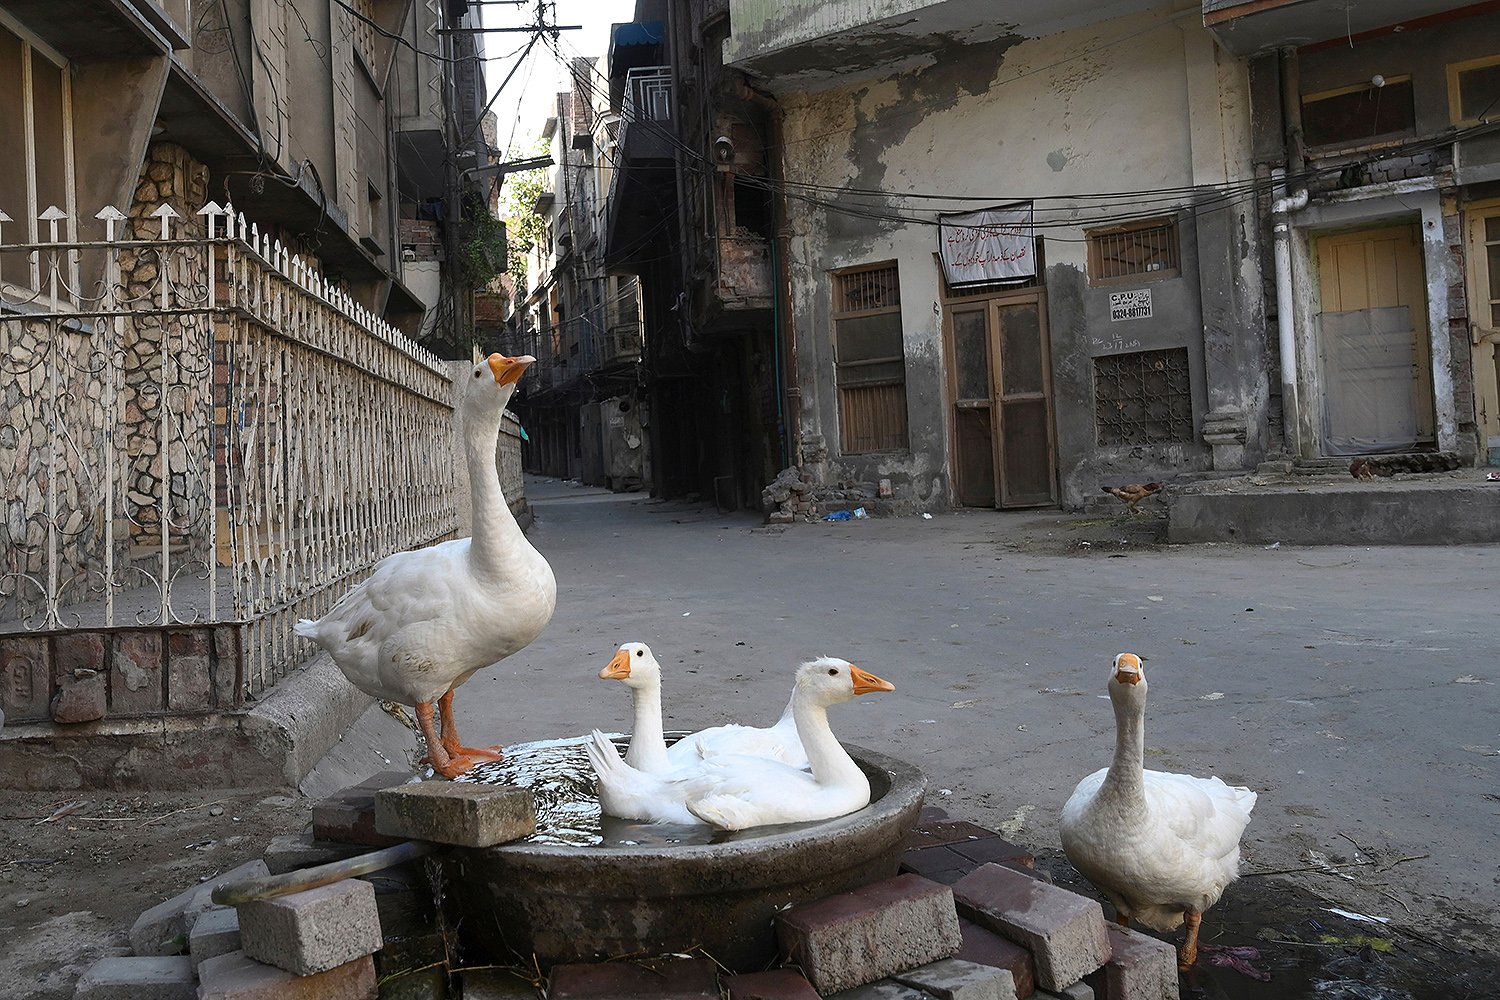 Ducks are seen in a deserted residential area of Lahore, Pakistan, on June 17 after the area was sealed off by authorities because of the coronavirus. ARIF ALI/AFP via Getty Images